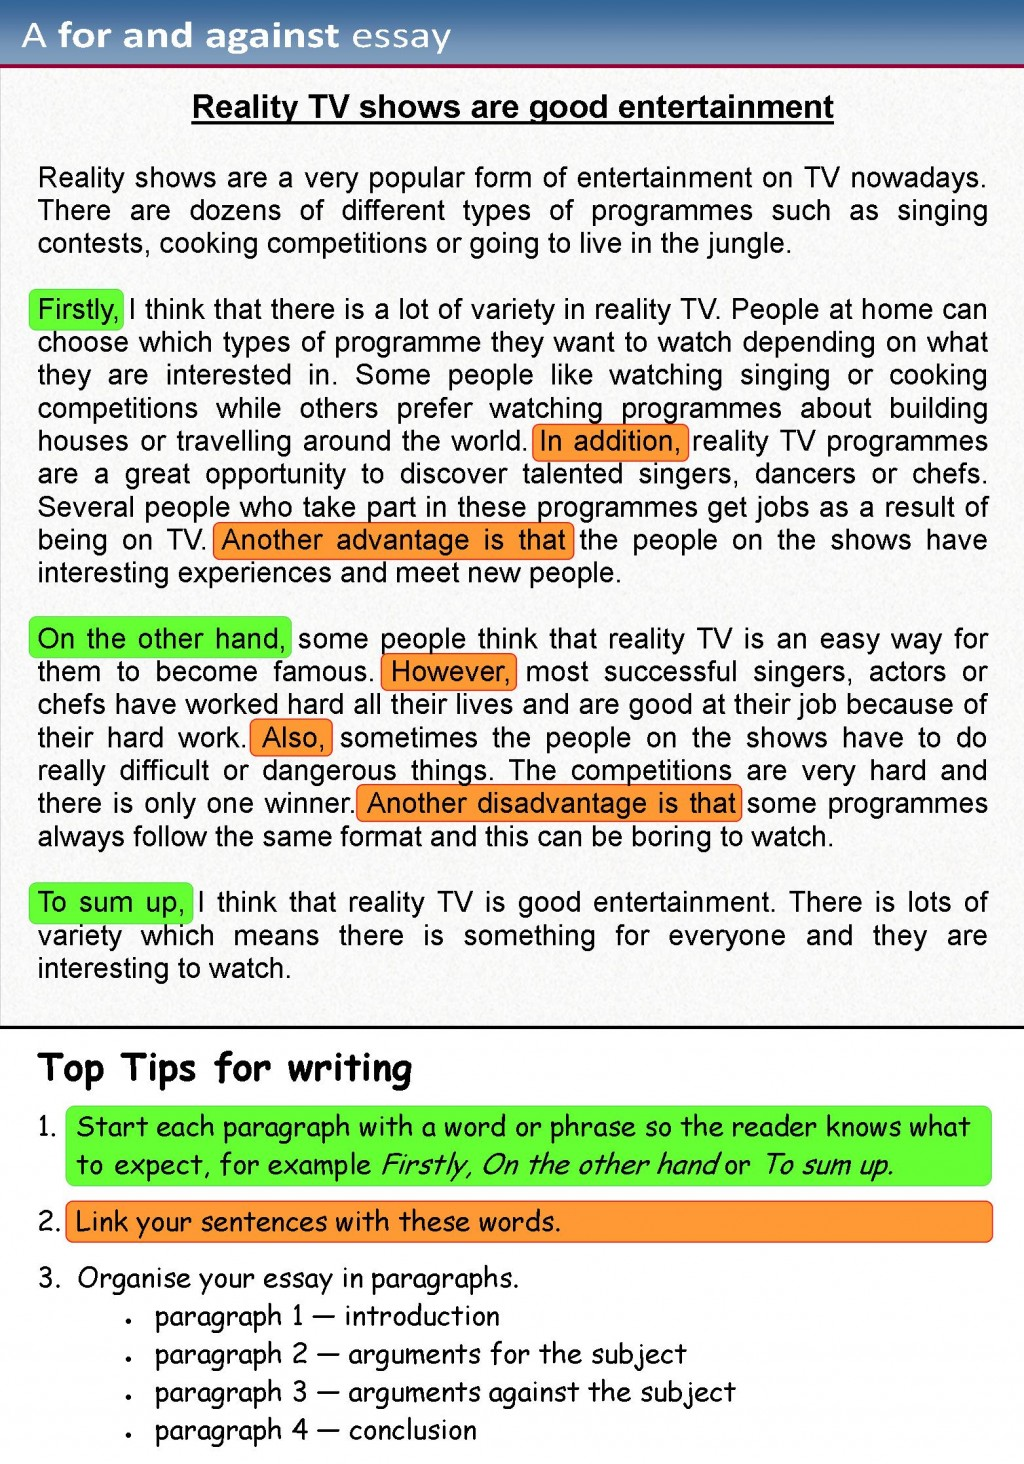 024 Tips To Write Good Essay Example For Against 1 Marvelous A Narrative Persuasive In Exam Large